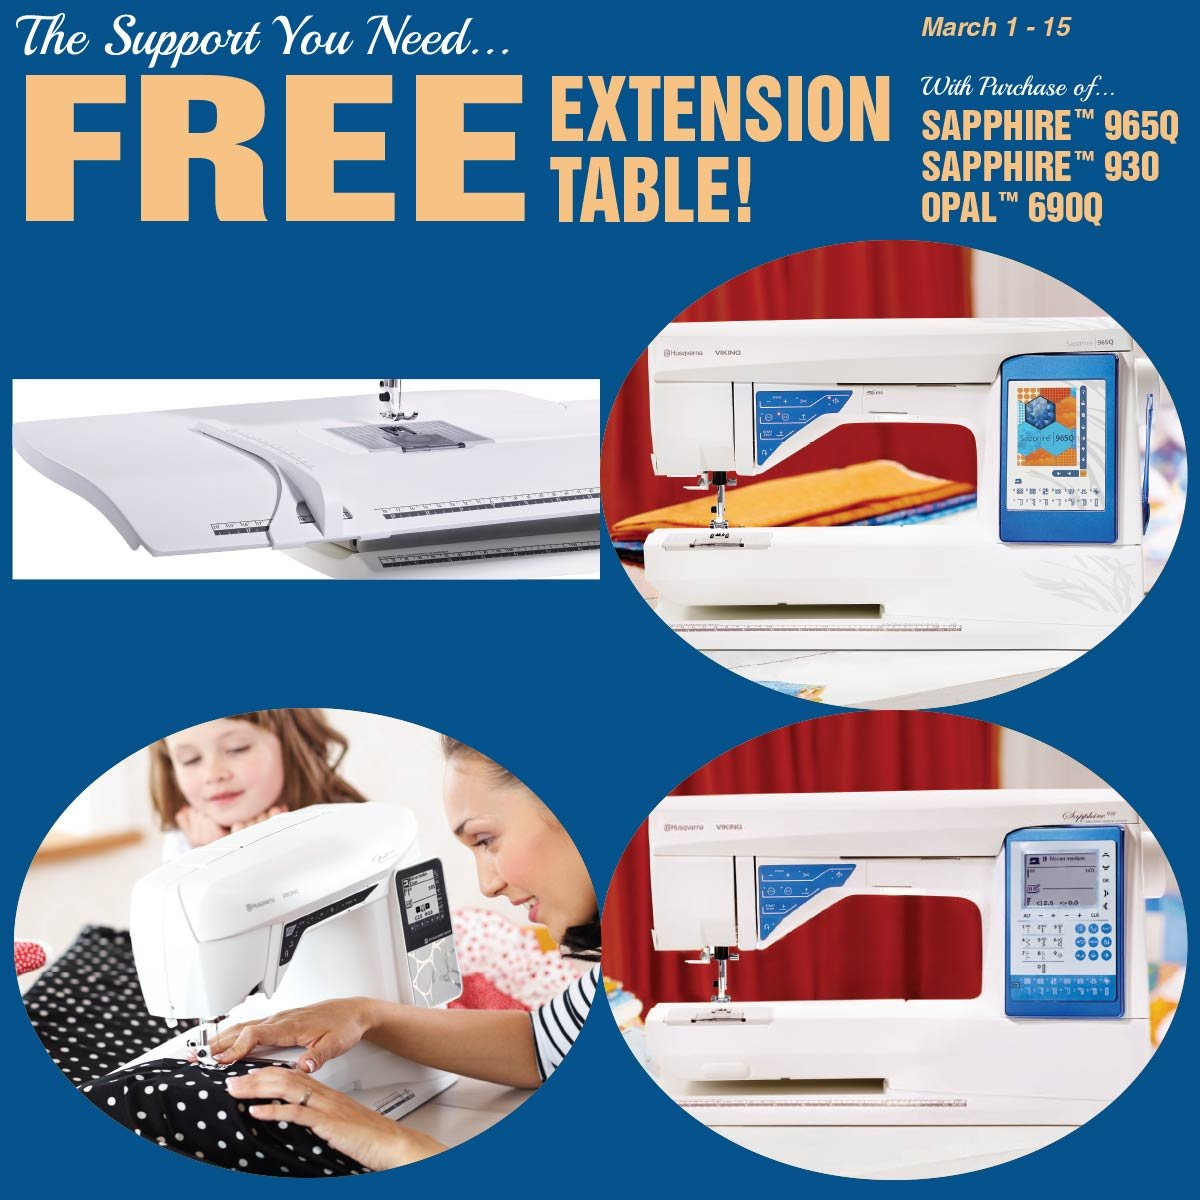 Free Extension Table with purchase